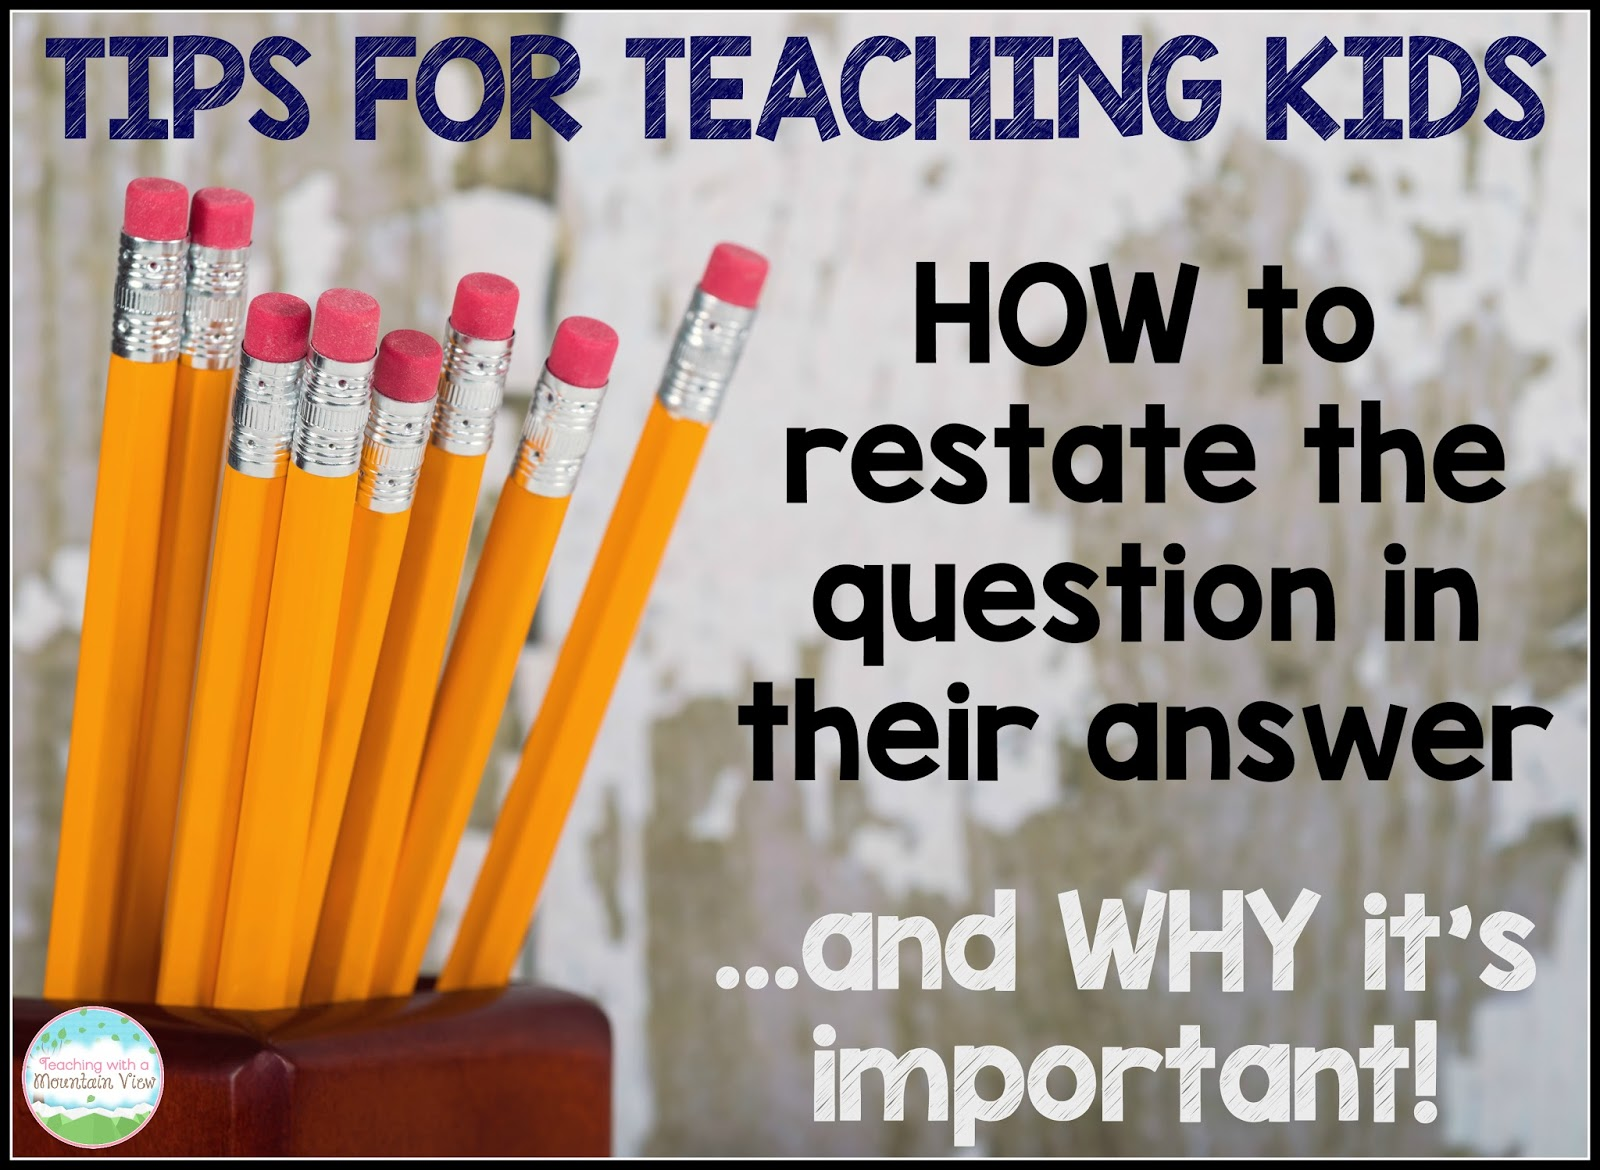 Teaching With A Mountain View  Restating The Question Lesson